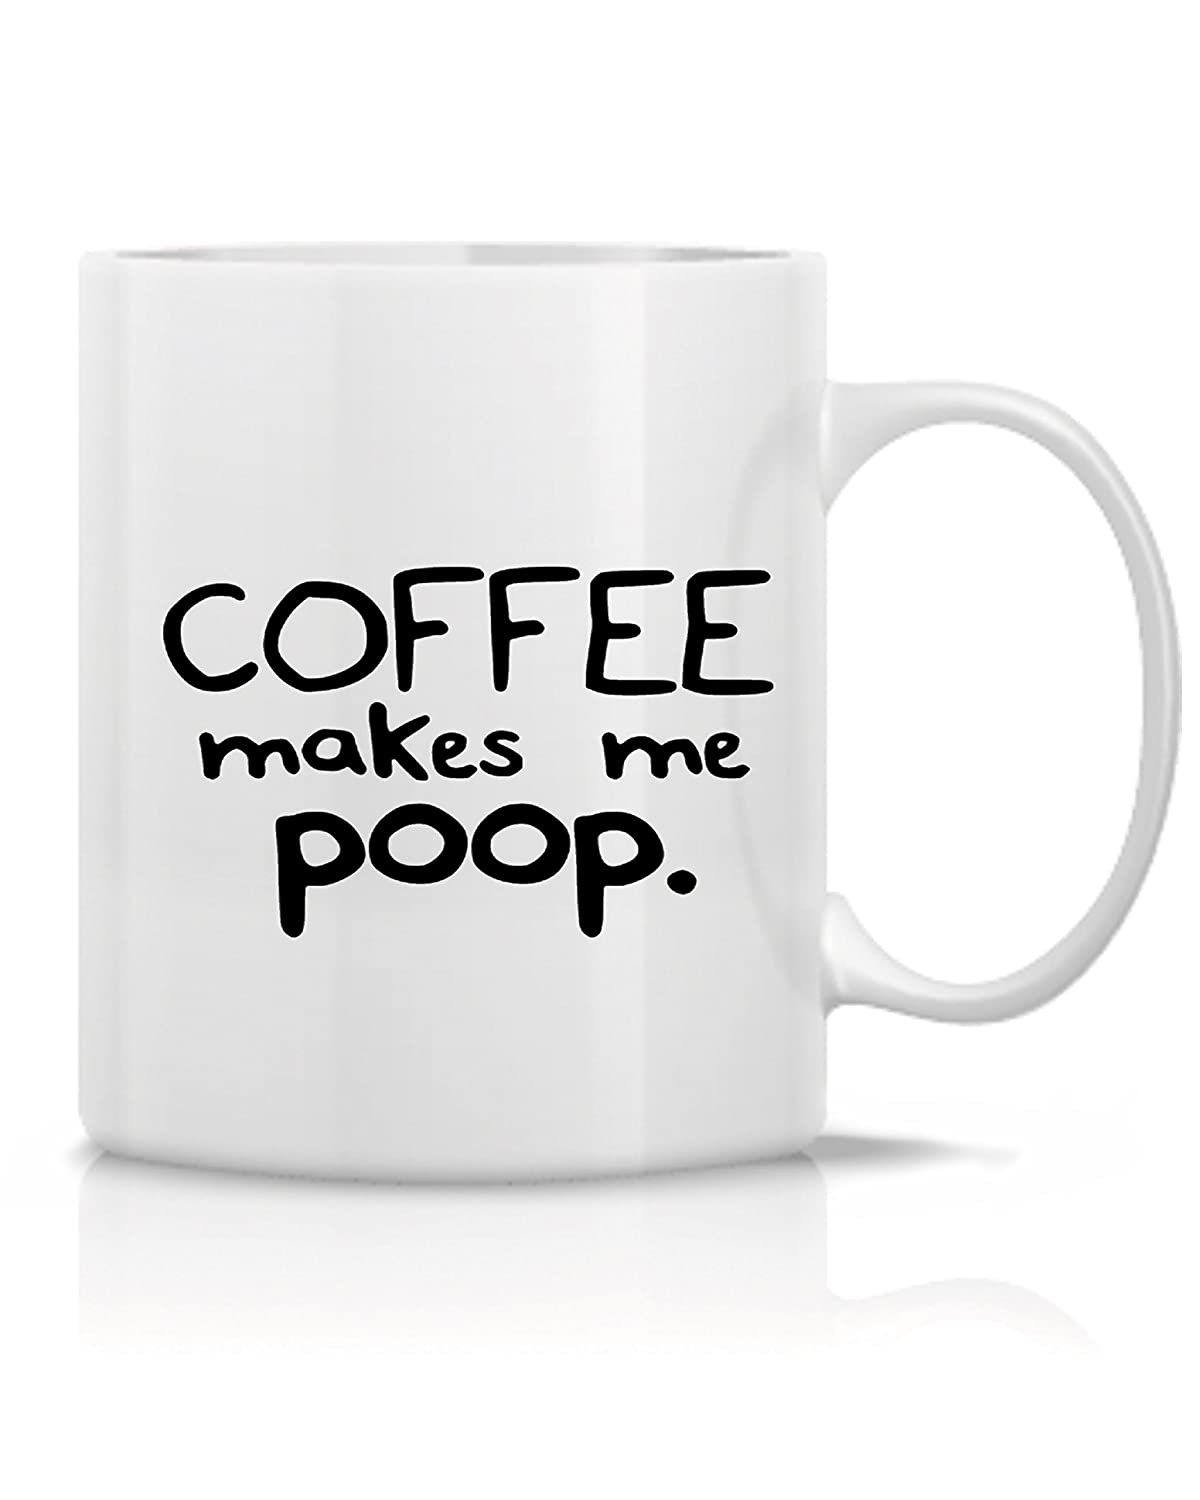 Hot Ass Mug's - Funny Mug - Coffee Makes Me Poop Mug- Great Gift for Dad  ,Mom ,Husband ,Wife, Sister, Brother, Co-Worker, Boss, Teacher - Funny  Humor and ...